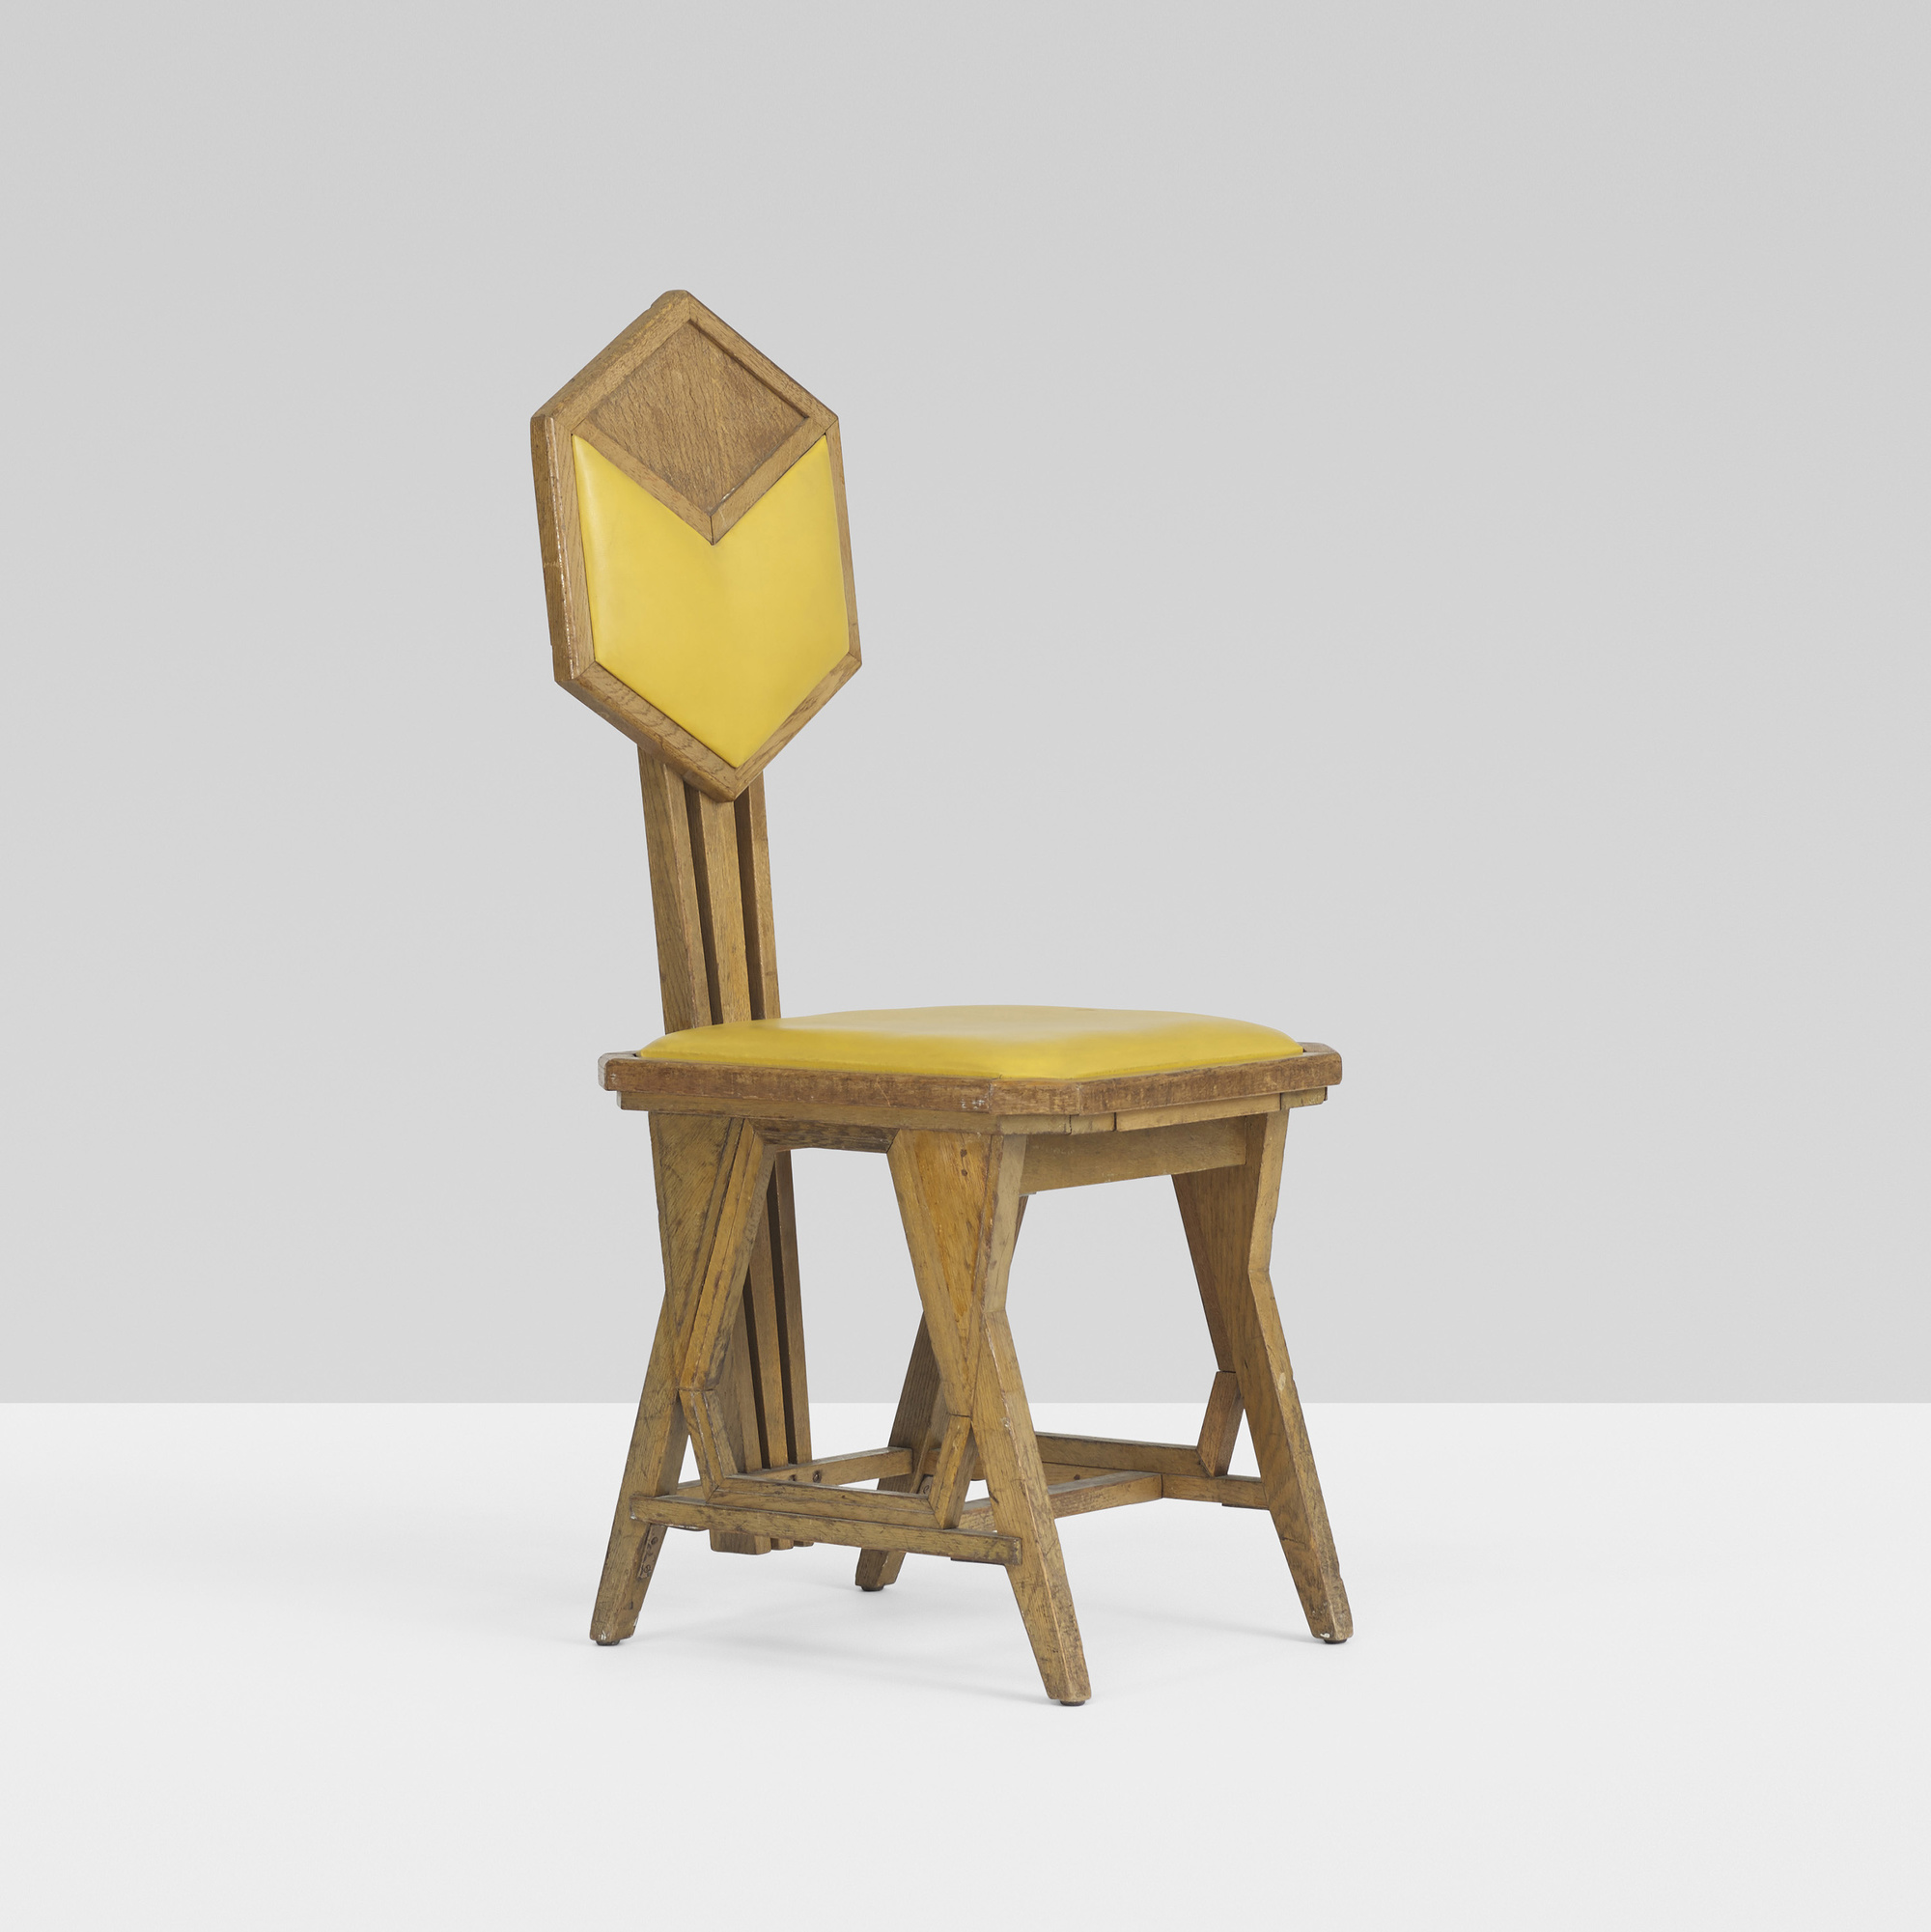 Merveilleux 156: Frank Lloyd Wright / Chair From The Imperial Hotel, Tokyo (1 Of